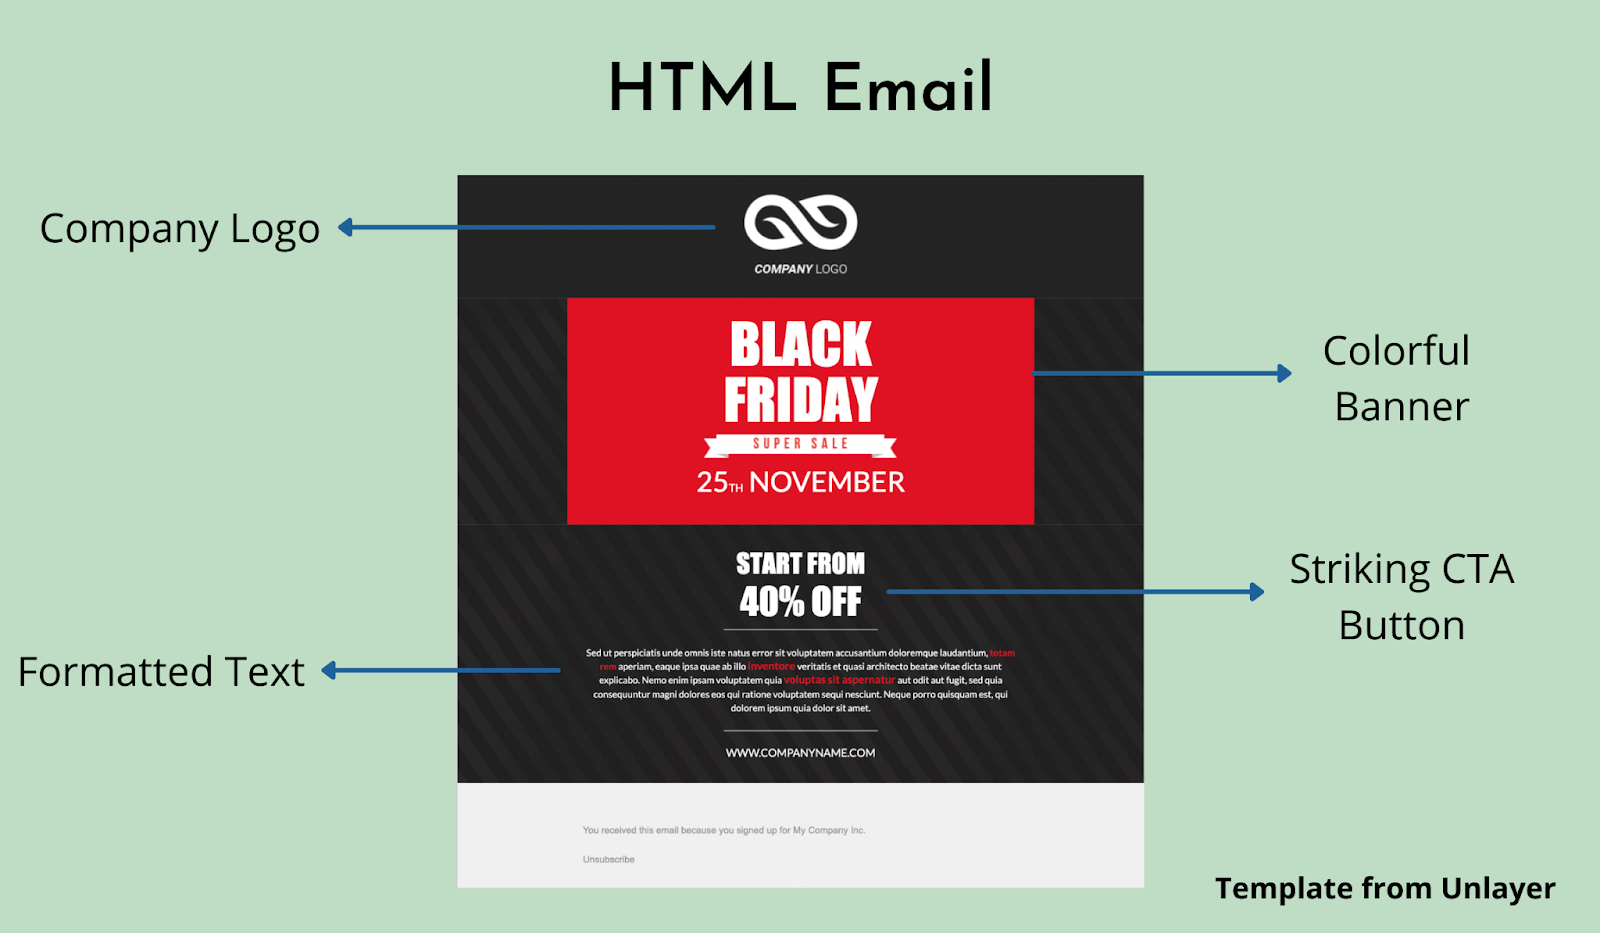 What does a HTML Email look like